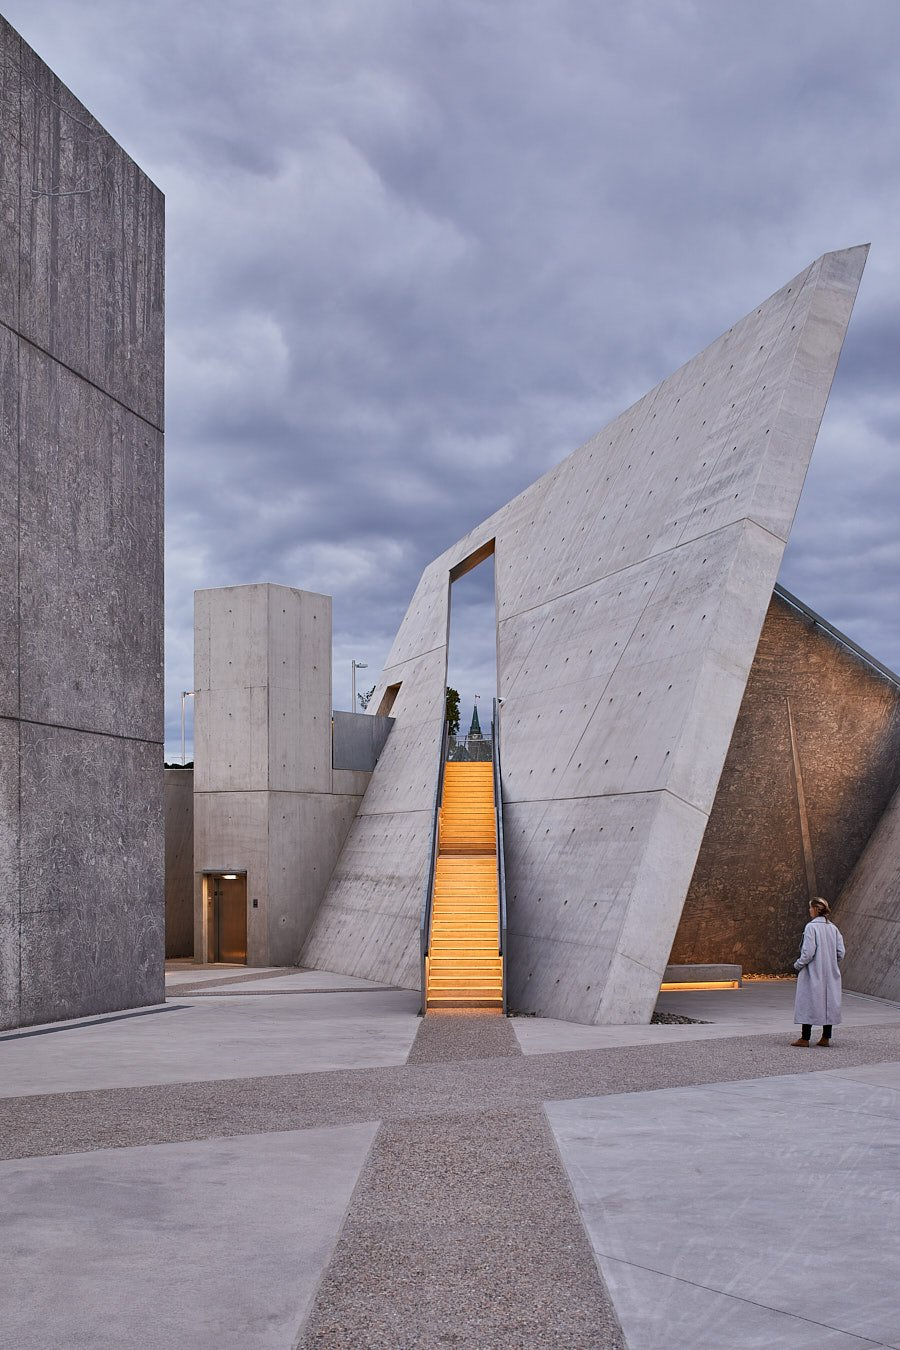 National Holocaust Memorial by Daniel Liebeskind in Ottawa, Canada - Courtesy of Daniel Liebeskind.